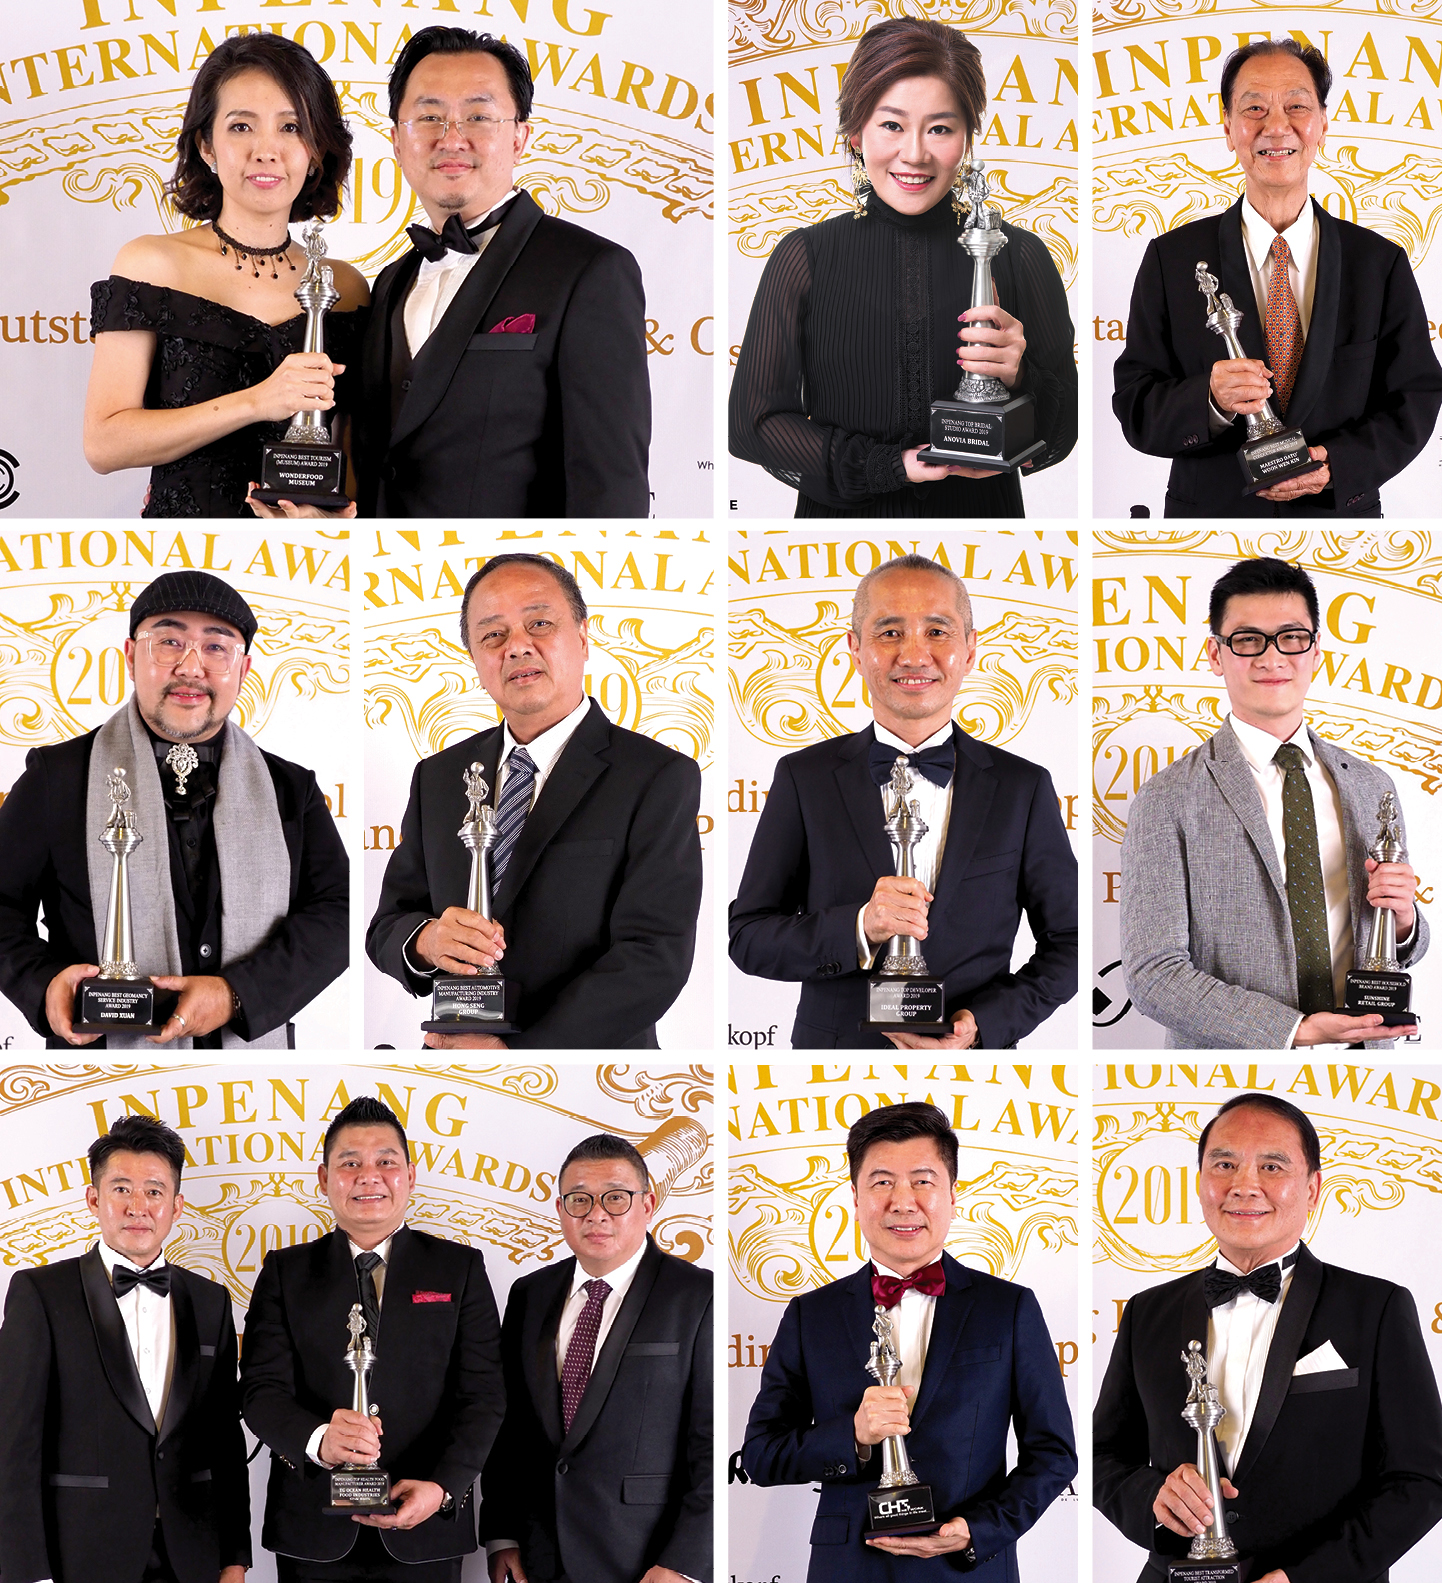 INPG Awards Winners.jpg